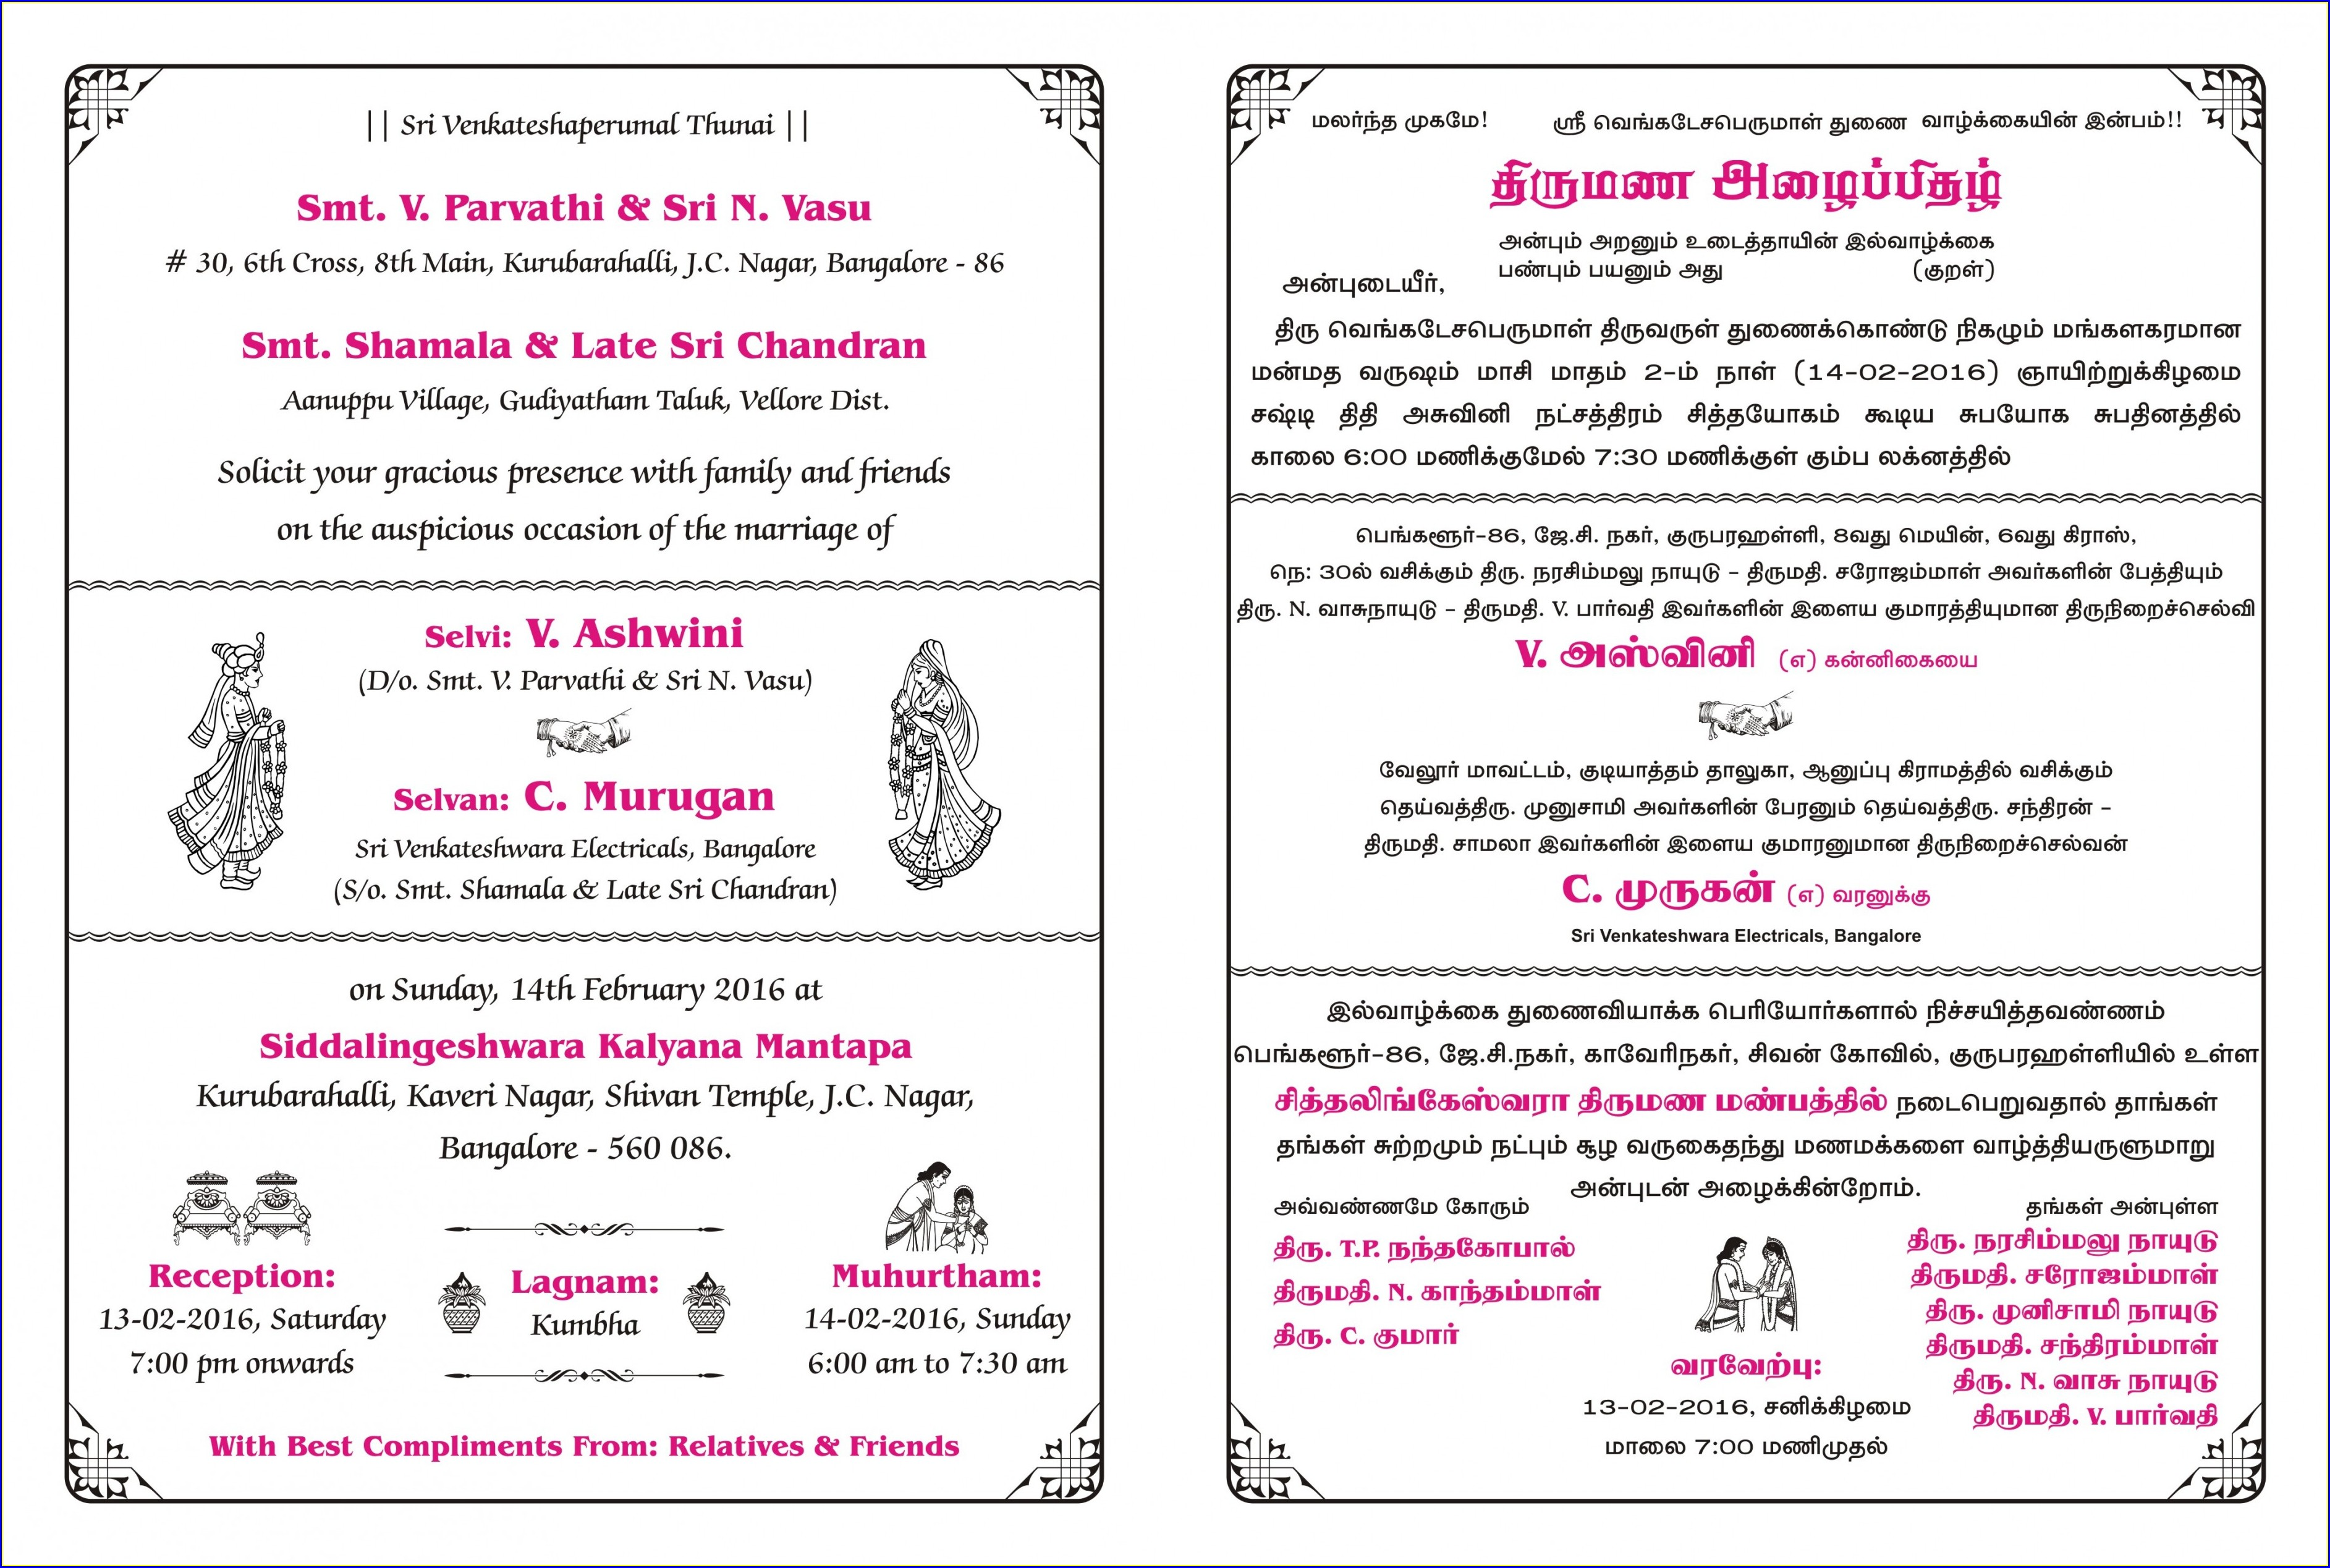 Wedding Card Marriage Invitation Wordings In Tamil Language